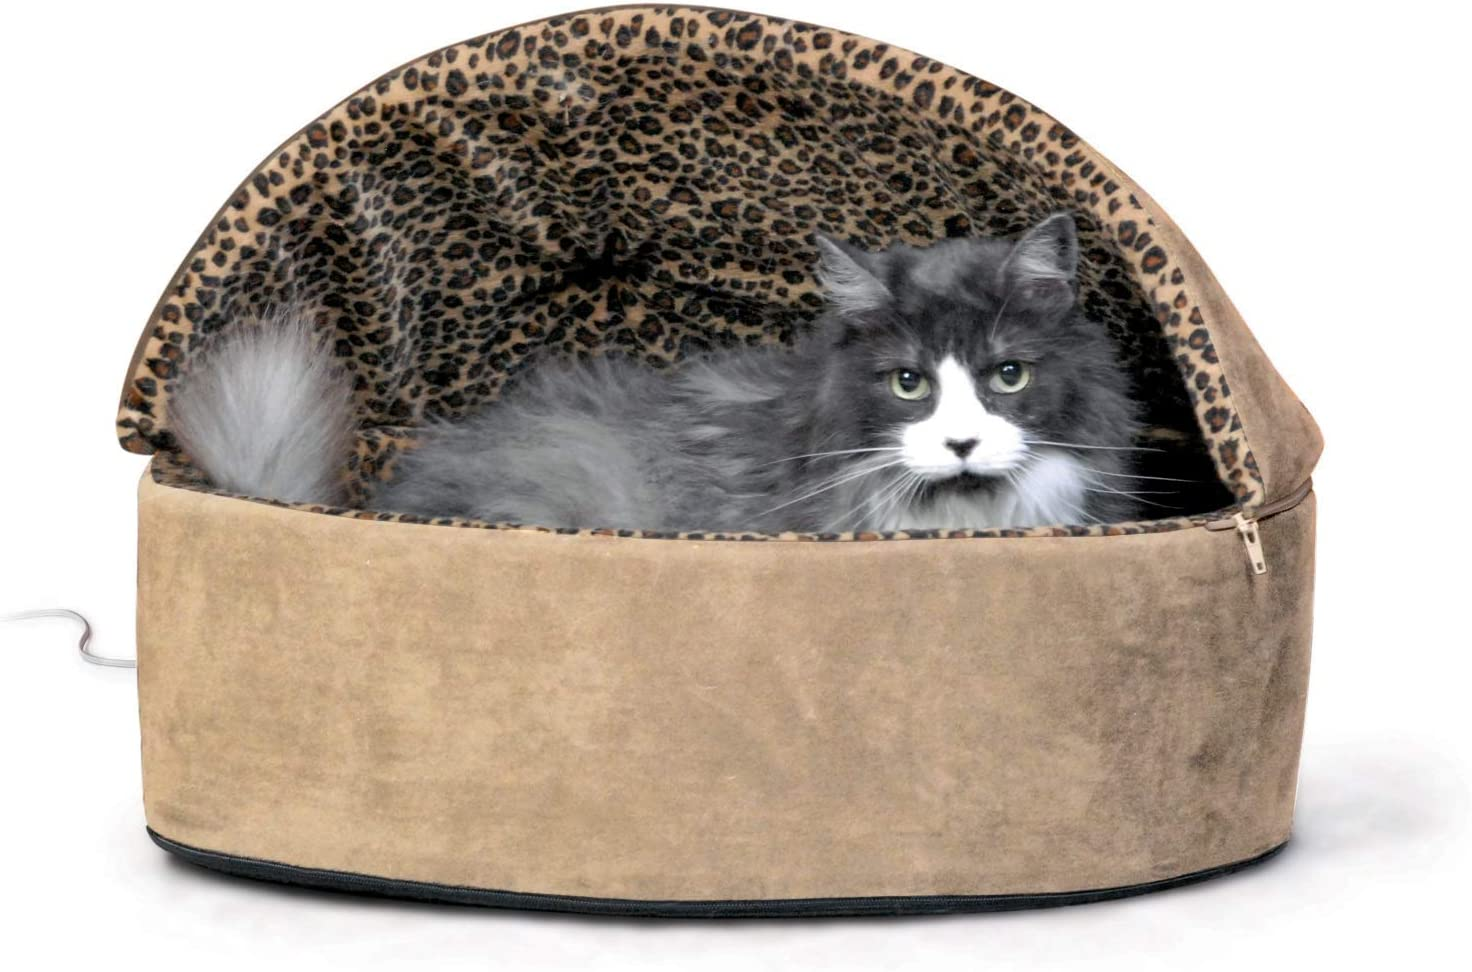 K&H PET PRODUCTS Thermo-Kitty Heated Deluxe Hooded Cat Bed, Washable Removable Cover, Multiple Sizes, Multiple Colors